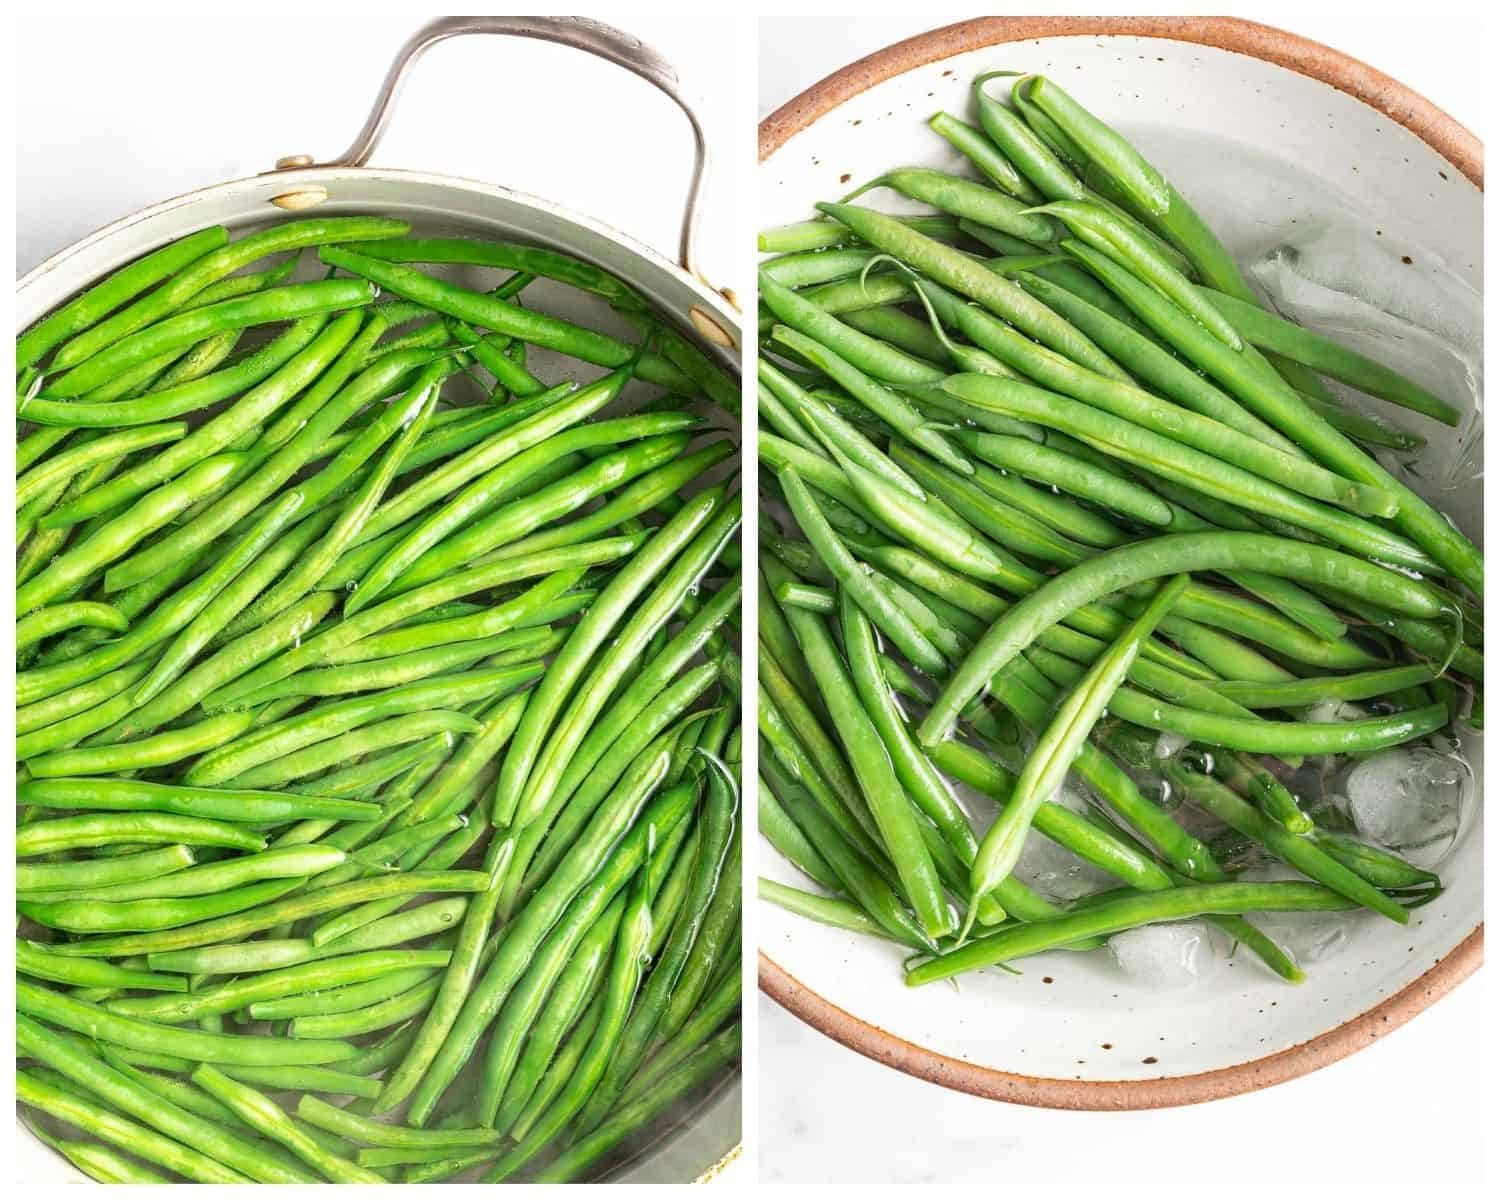 Side-by-side images showing green beans in water and then in an ice bath.